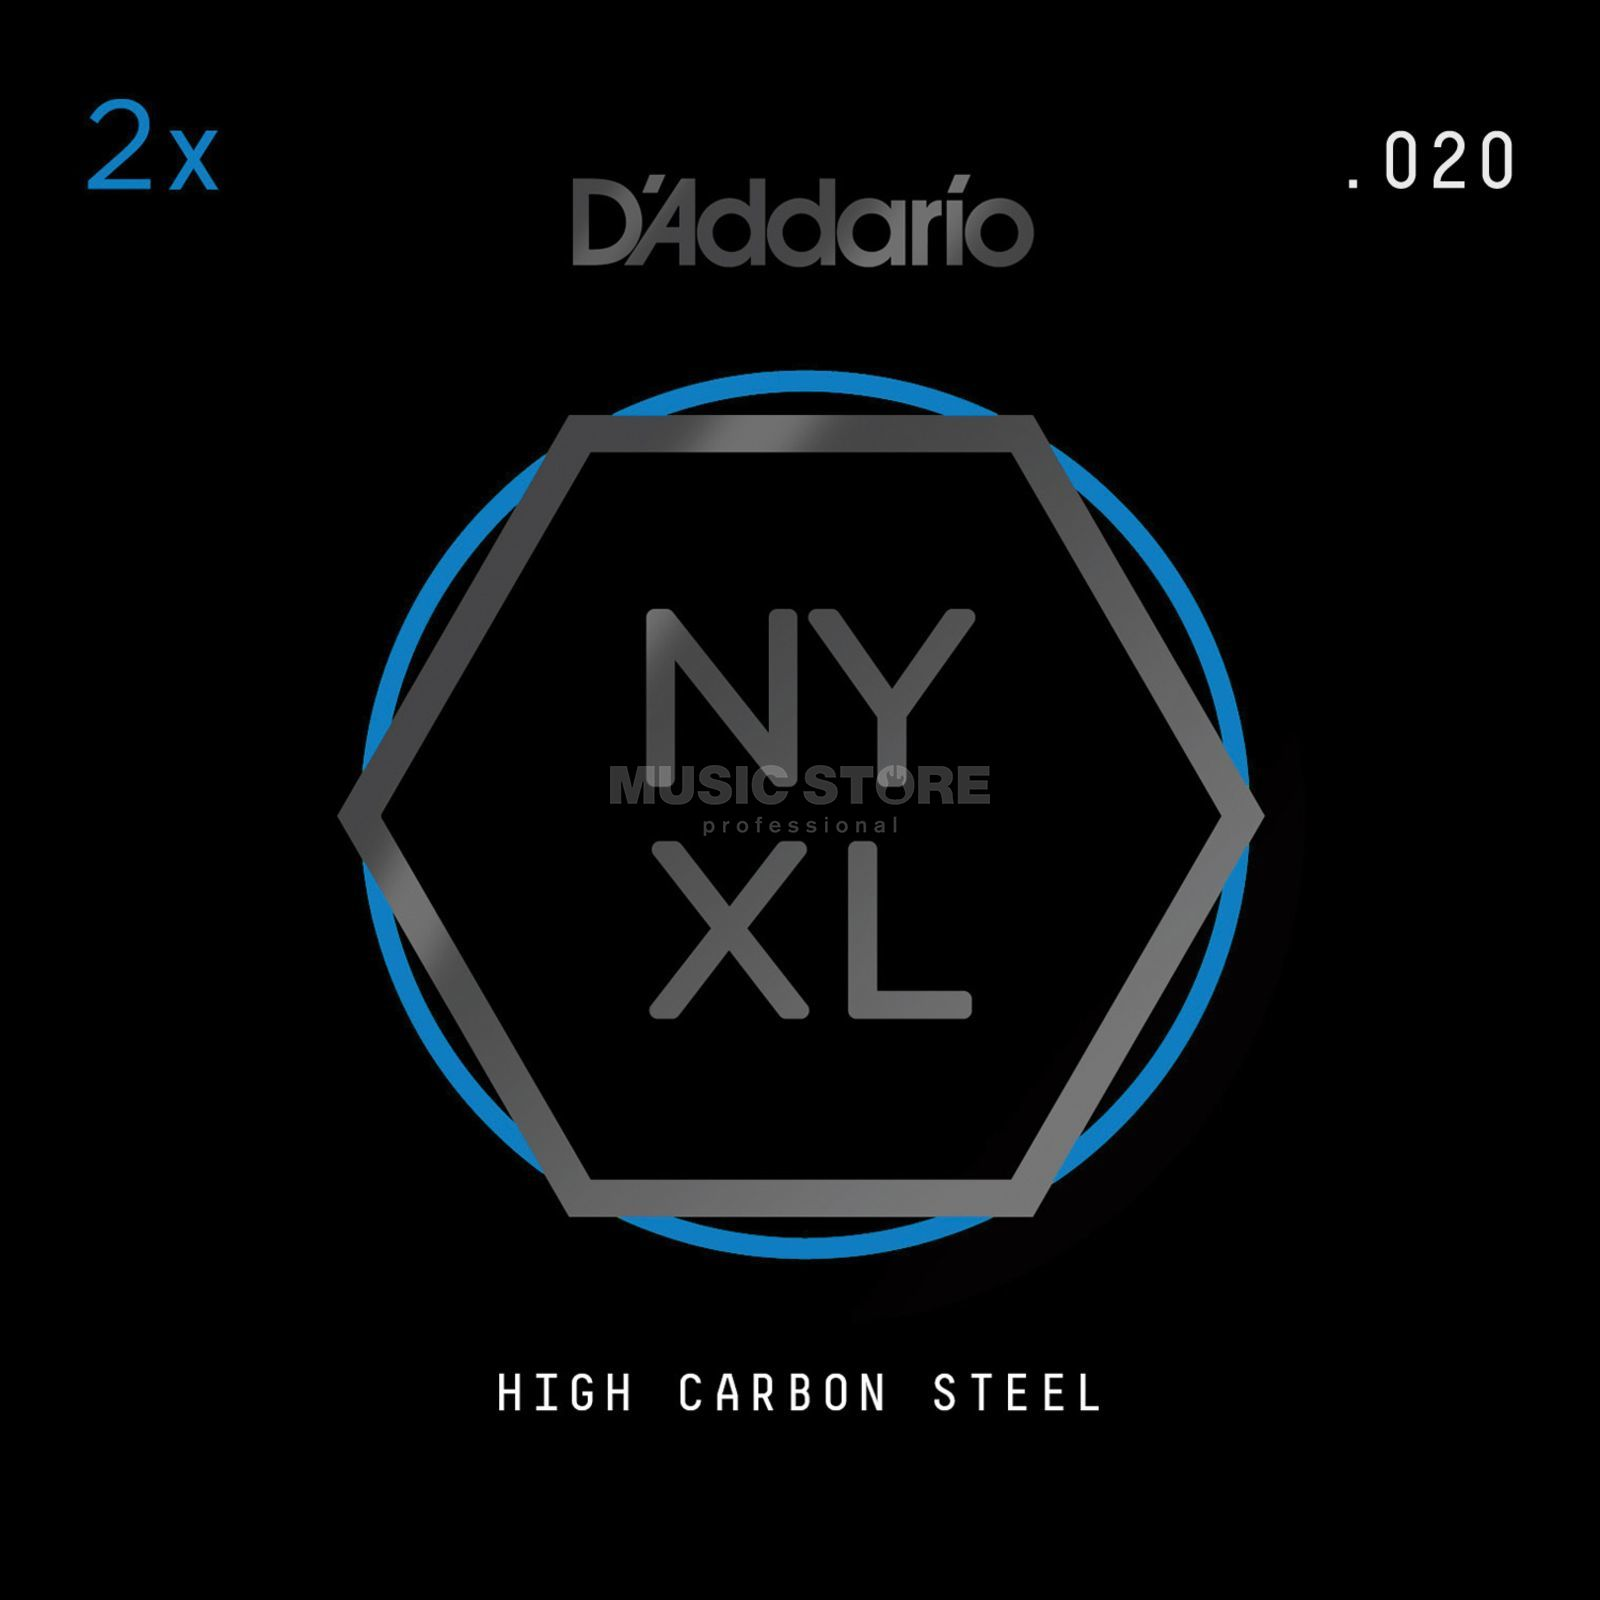 D'Addario NYPL020 Plain Single String 2-Pack - High Carbon Steel Imagen del producto